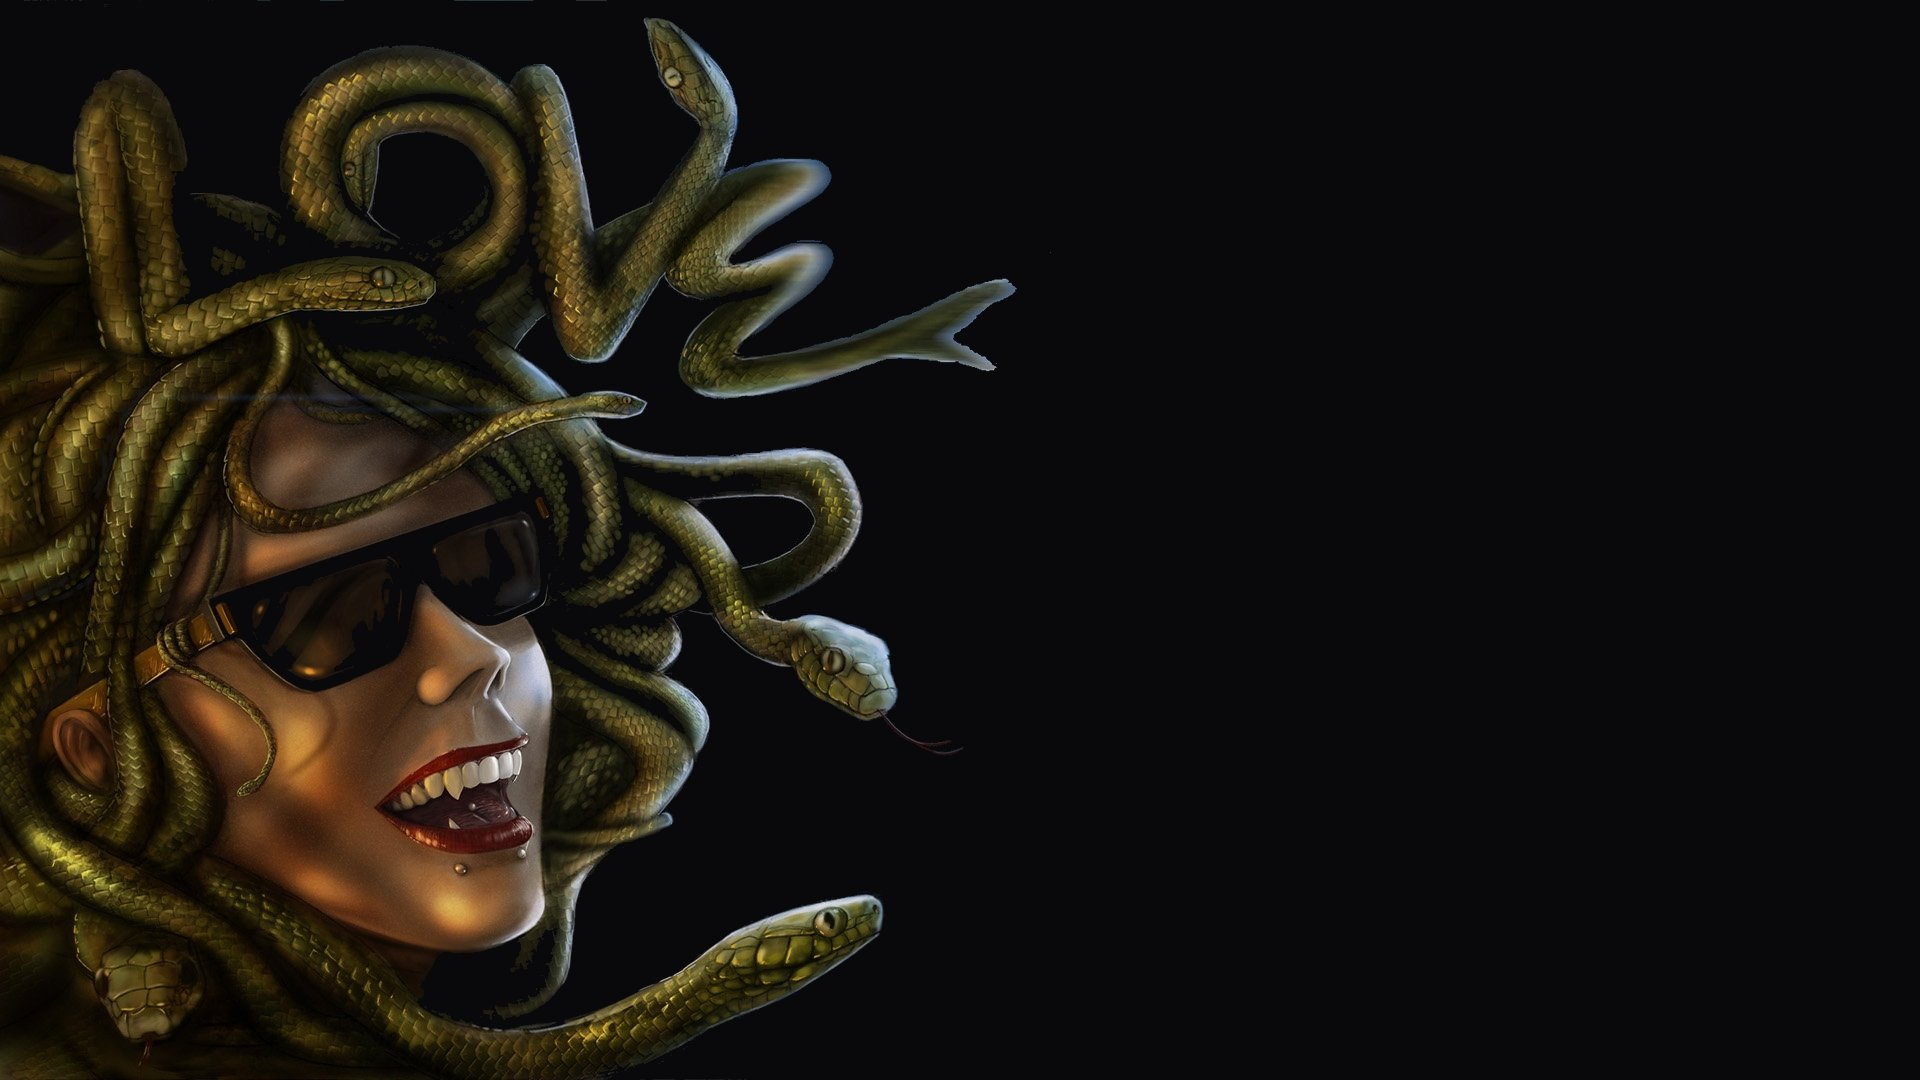 HD Medusa Wallpapers and Photos View HQ Definition Wallpapers